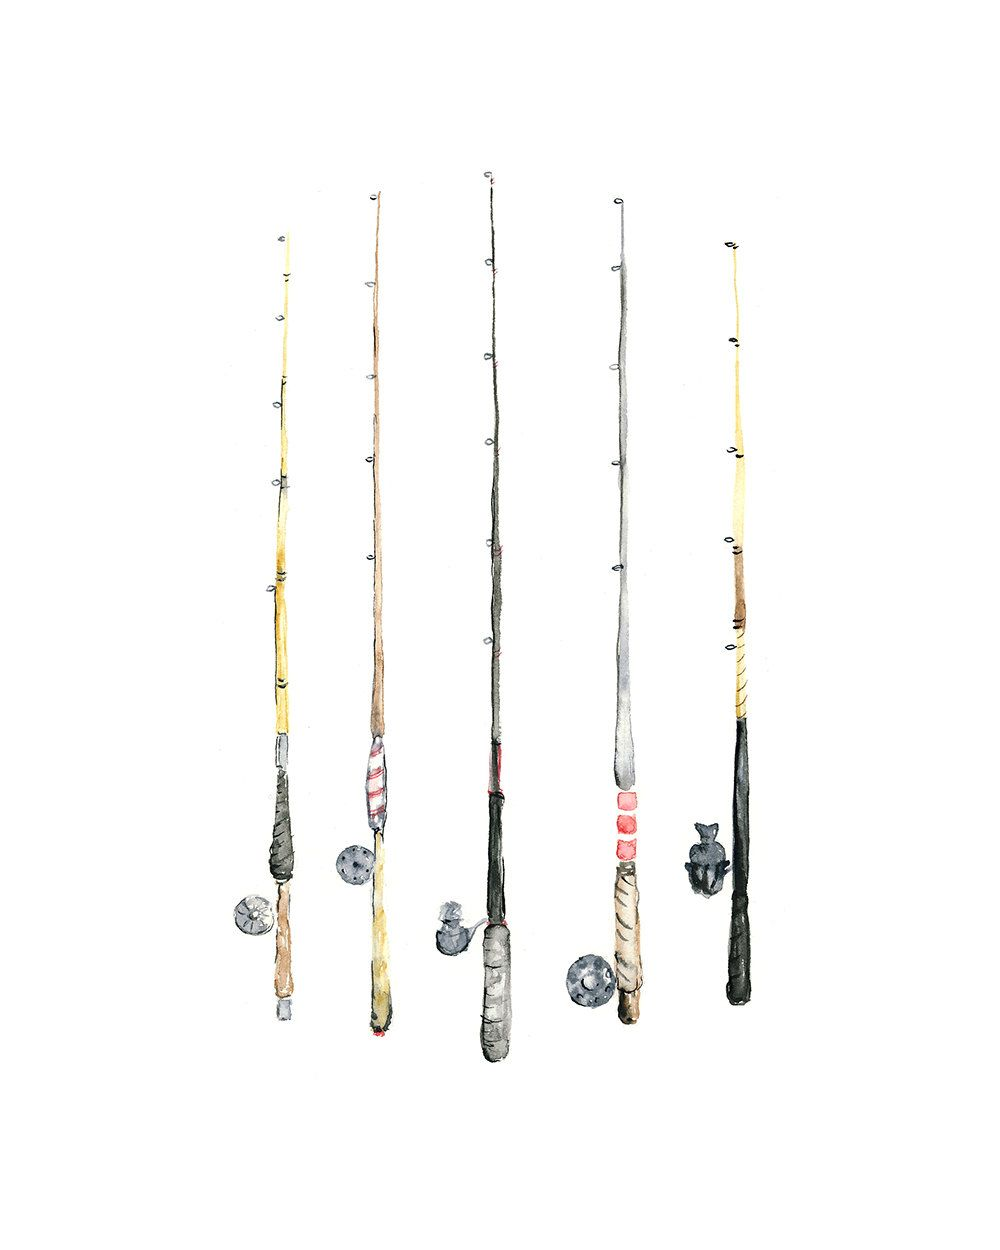 8x10 Fishing Rods Watercolor Giclee Print Canas De Pescar